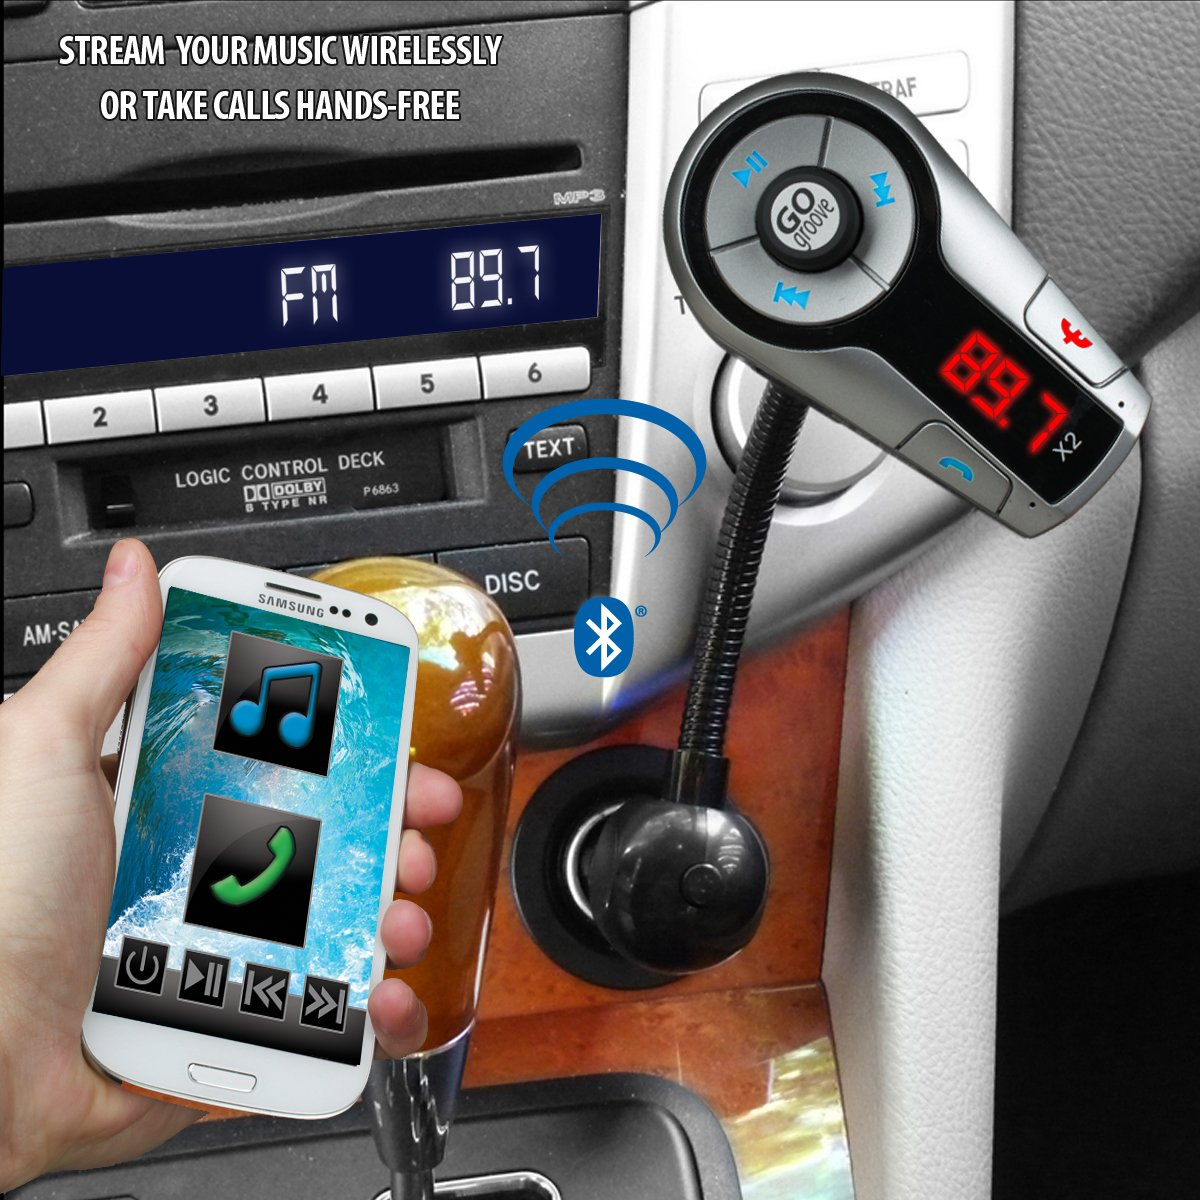 GOgroove FlexSMART X2 Bluetooth FM Transmitter for Car Radio w/USB Charging, Multipoint, Music Controls, Hands Free Microphone for iPhone, Android by GOgroove (Image #3)